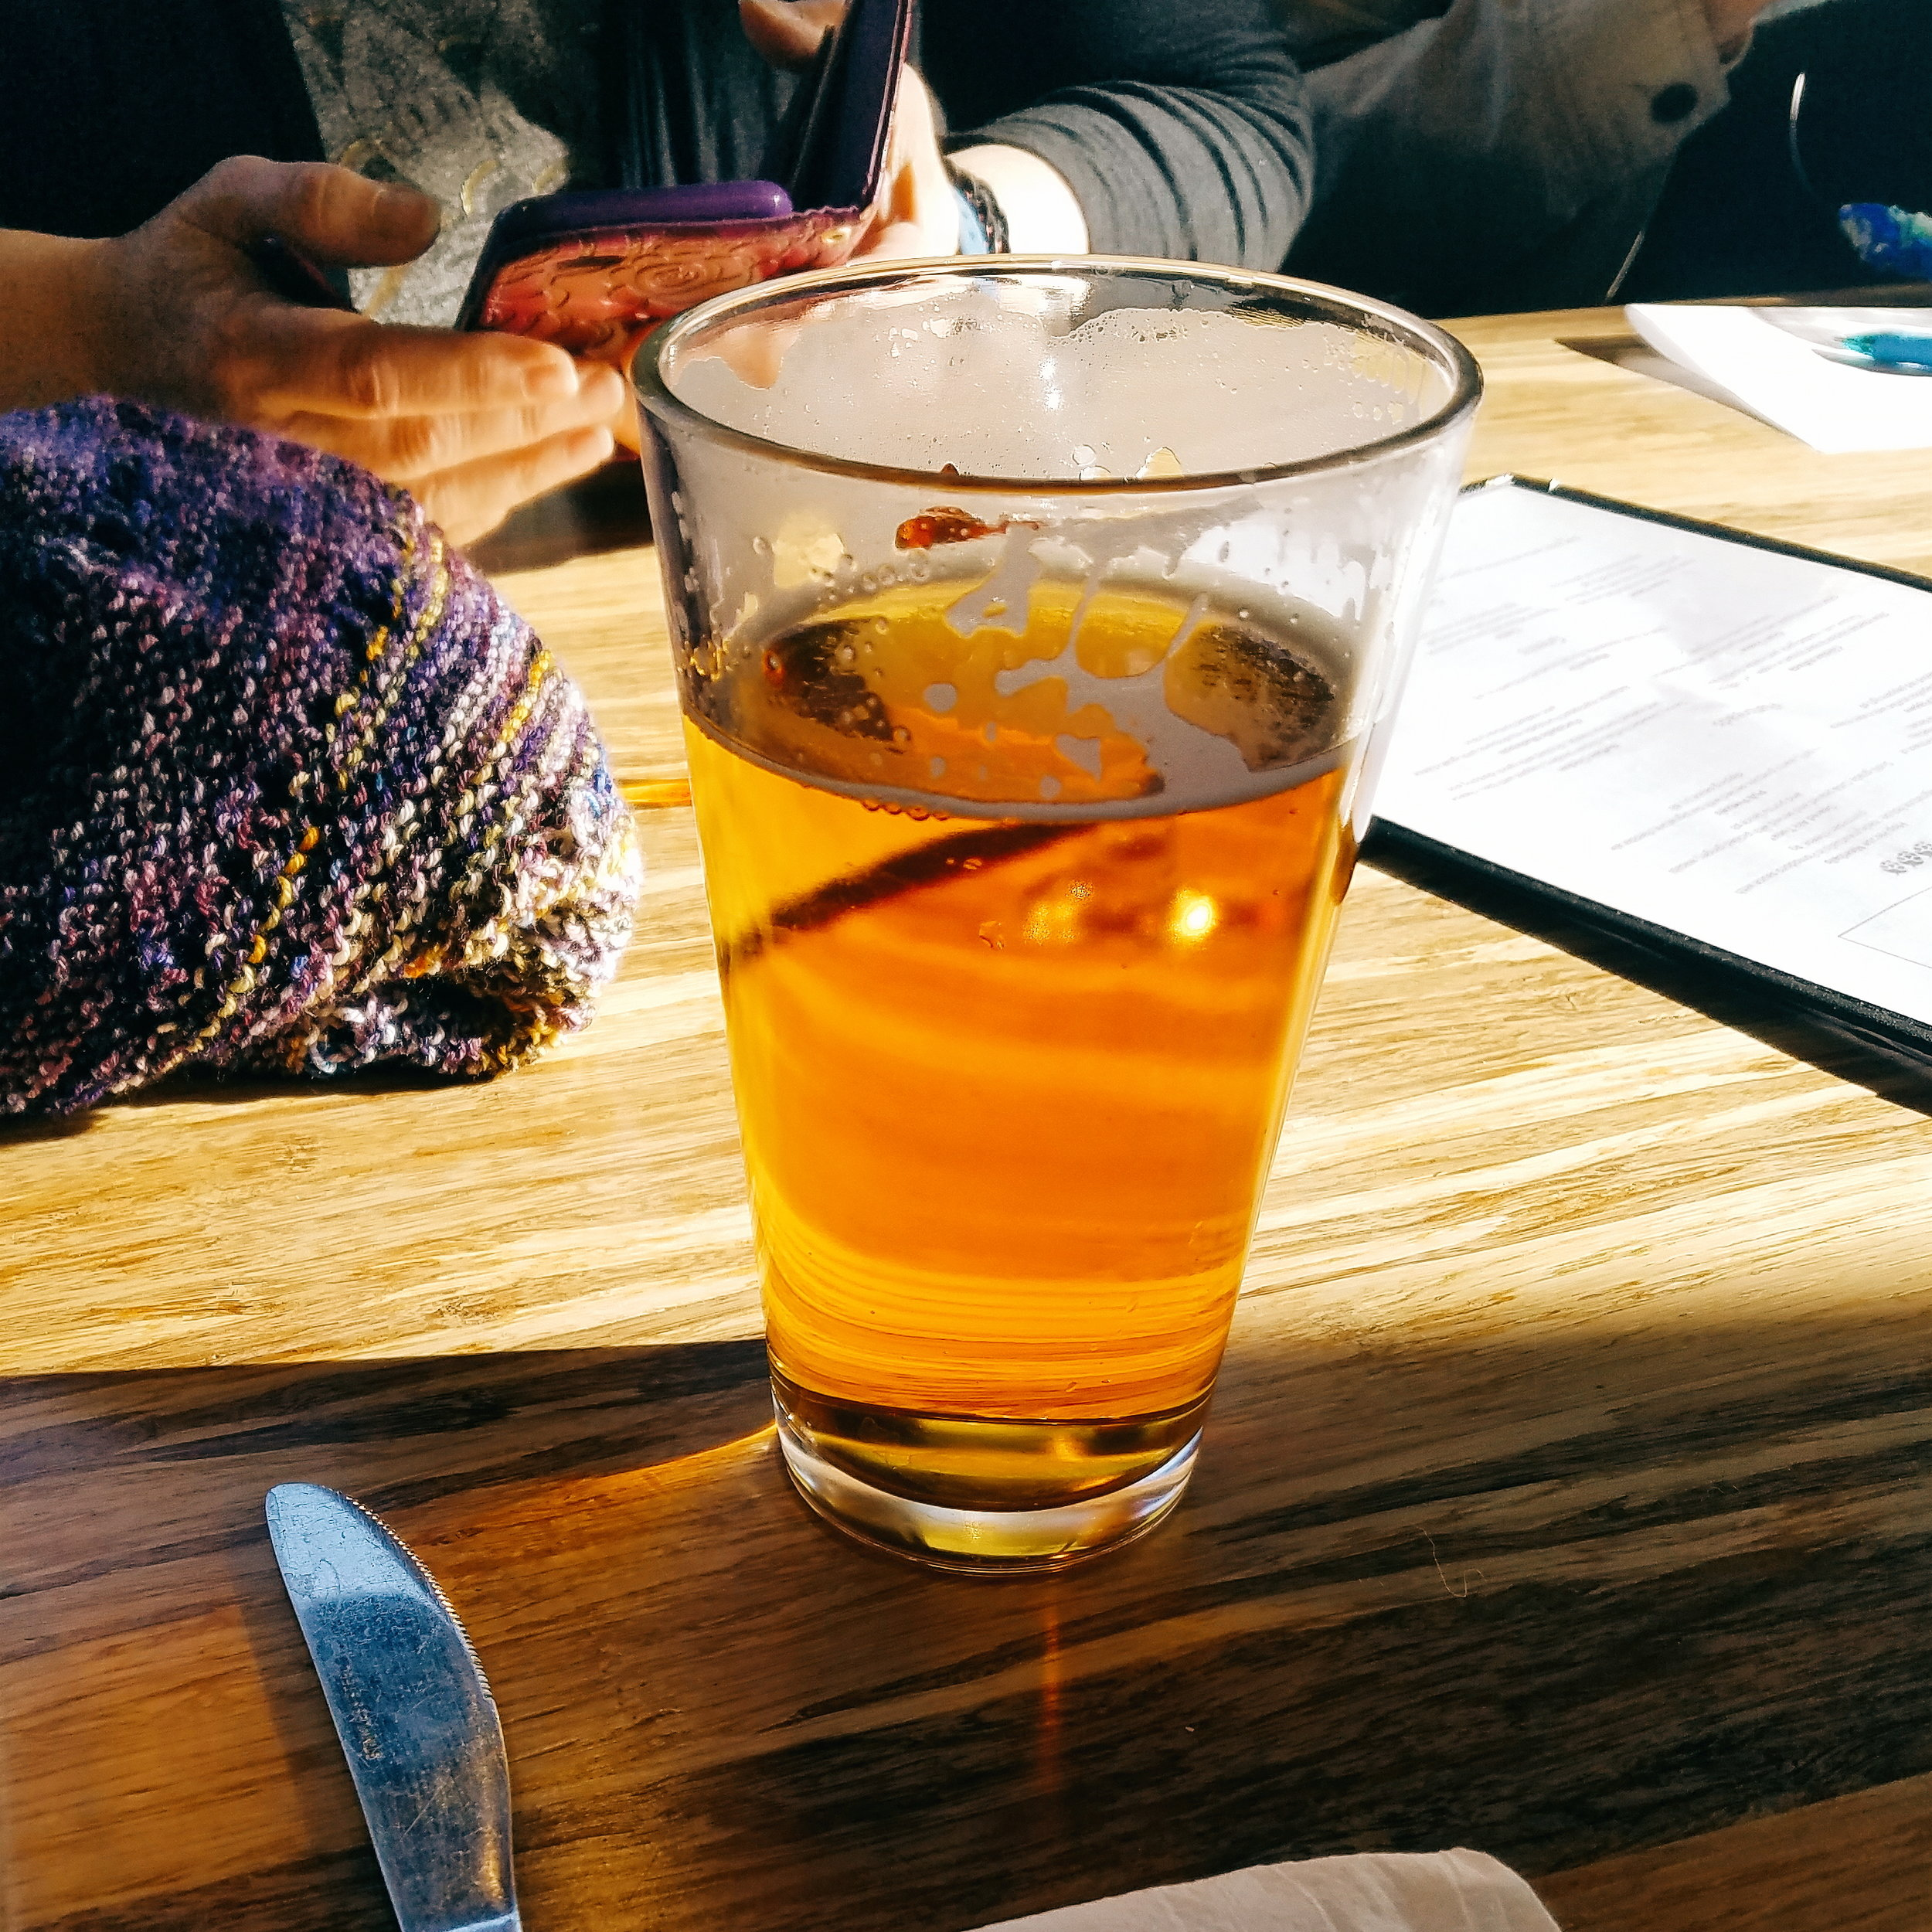 I recently joined a knitting group that meets weekly at a taproom in Redmond. Sunshine, beer & knitting - perfect!